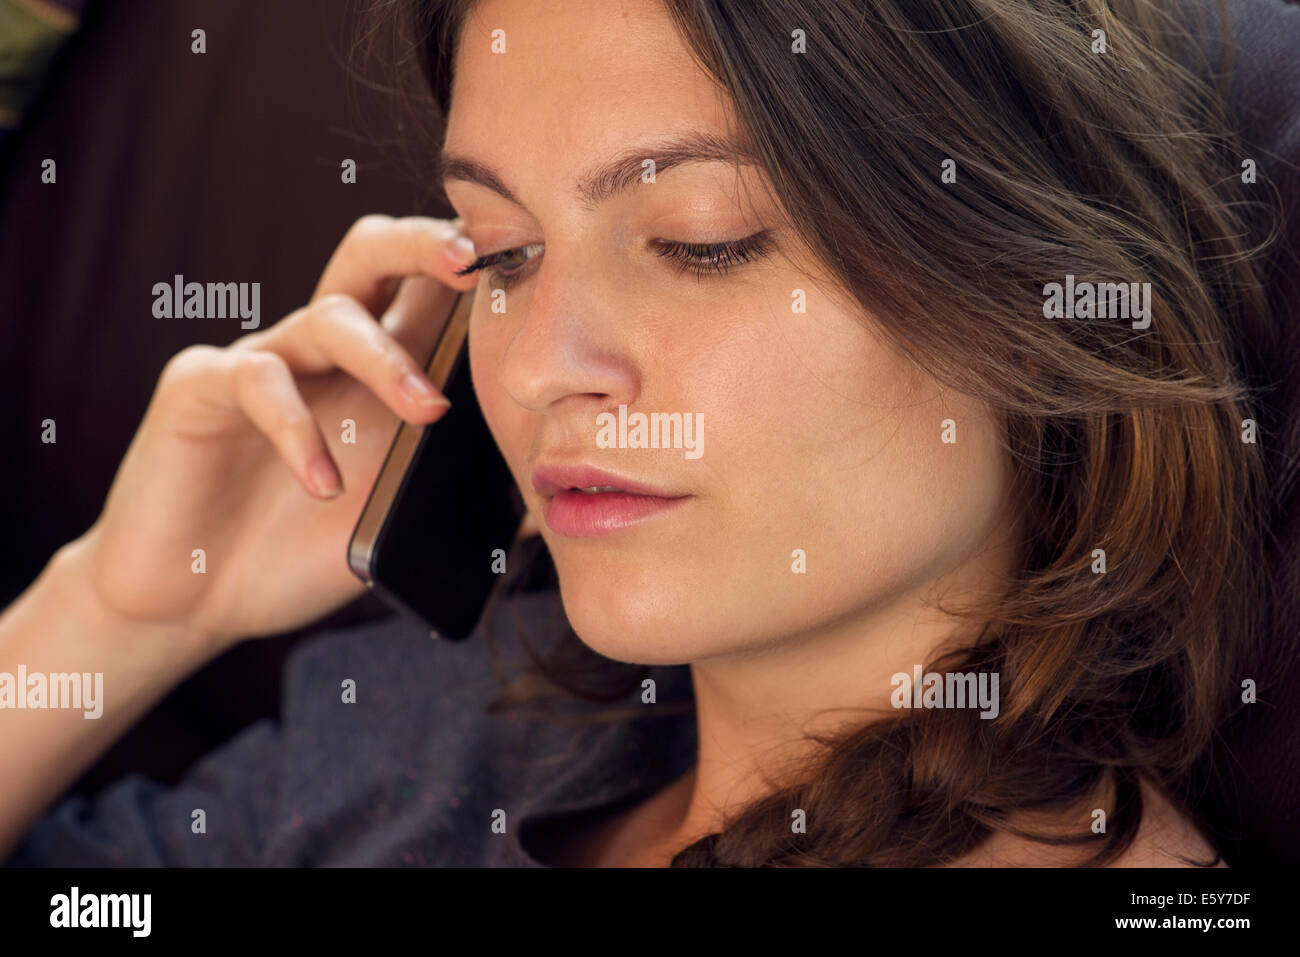 Woman talking on cell phone - Stock Image